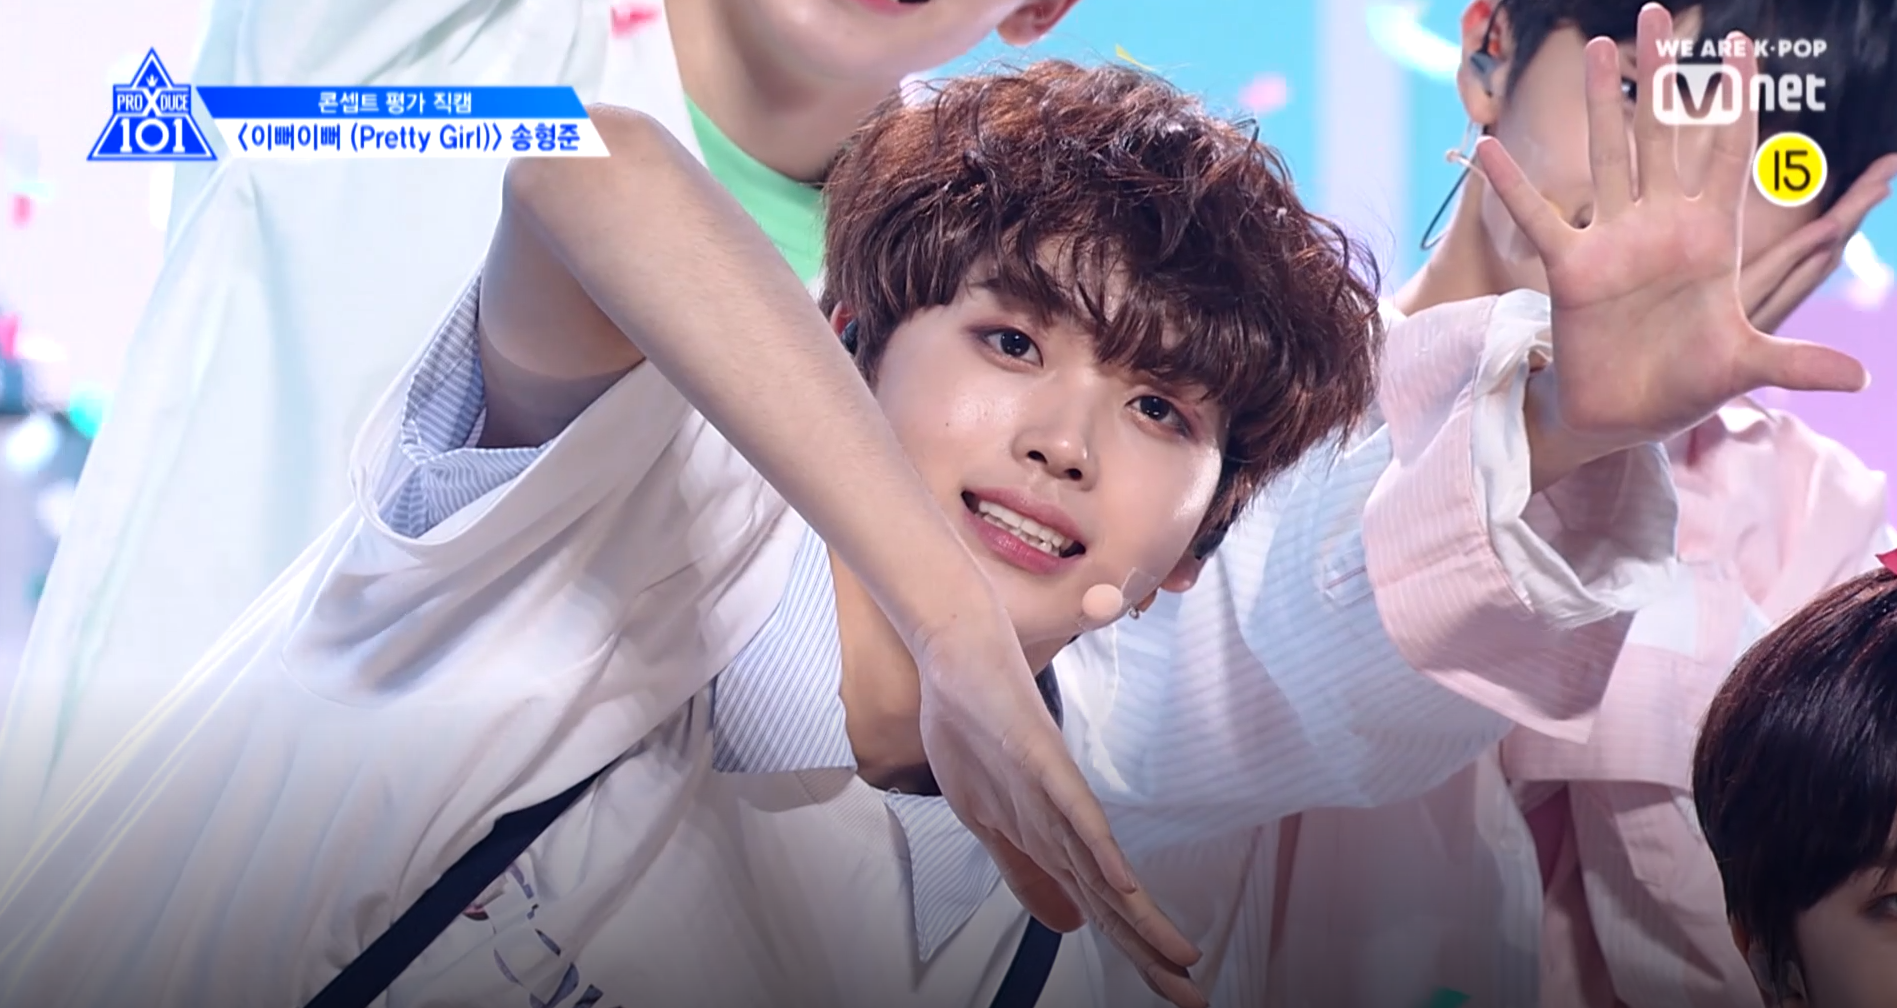 produce focus camera, produce x 101 Concept Stages, produce stage